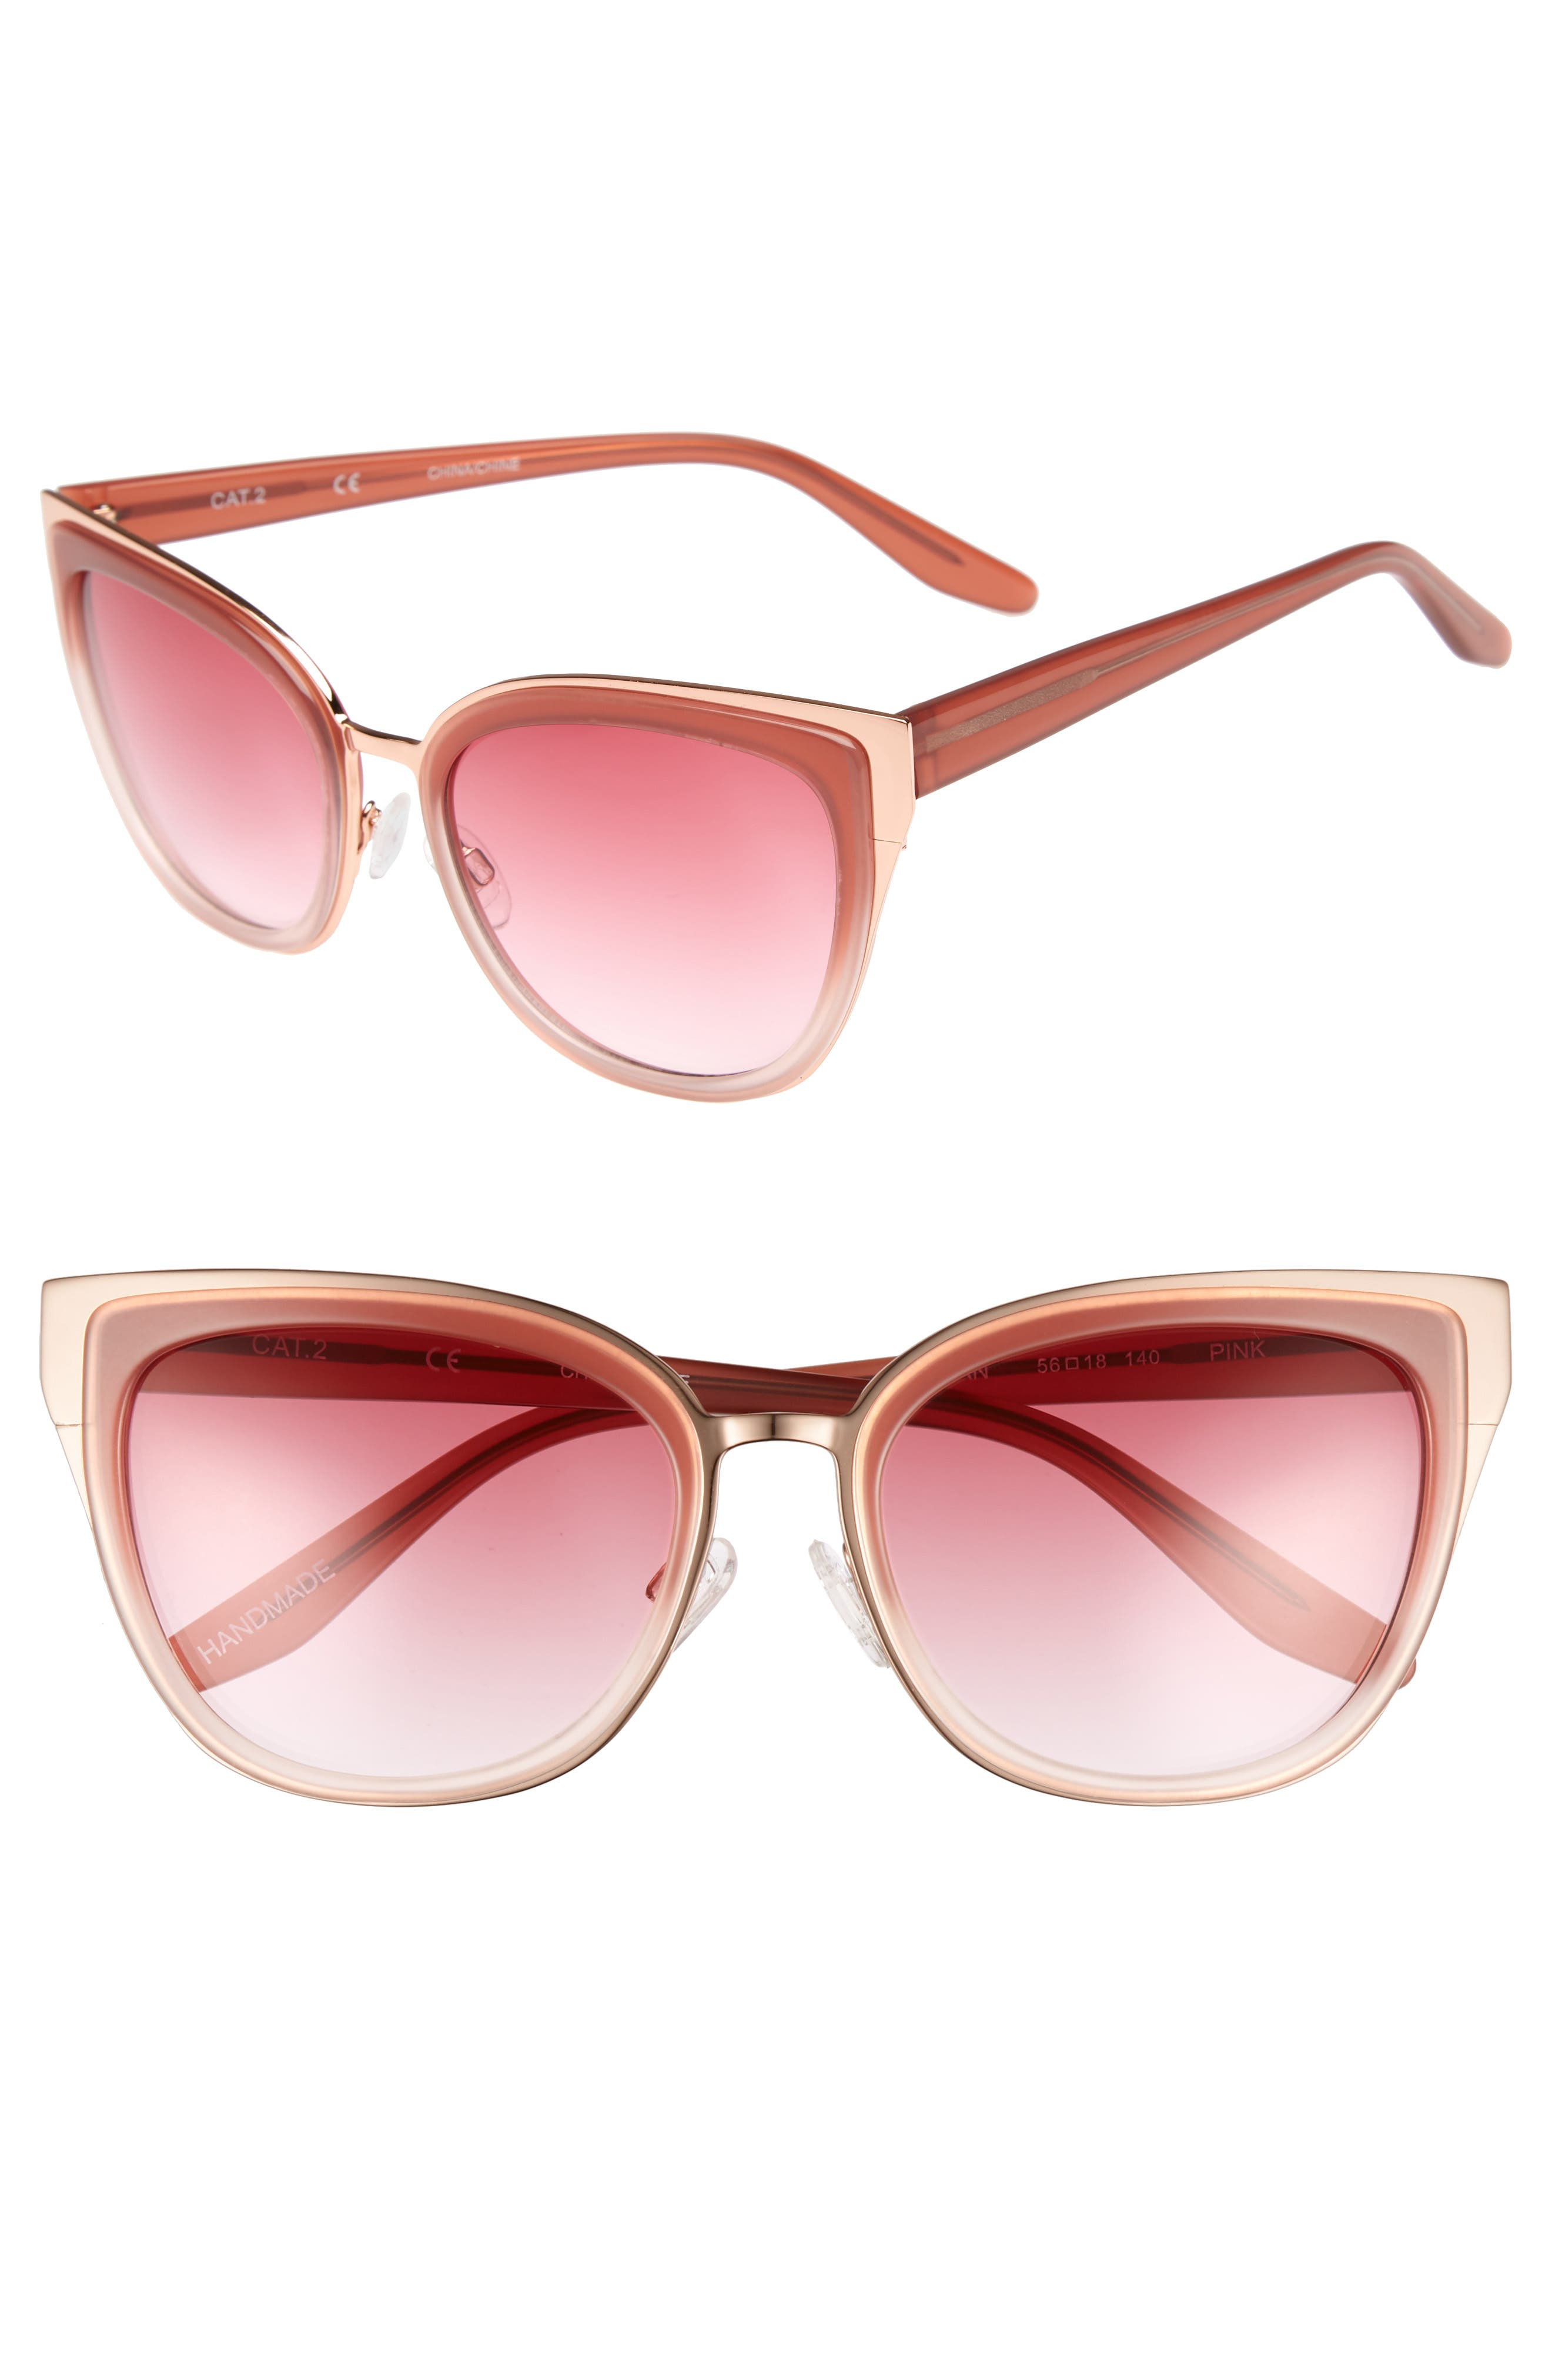 Lillian 56mm Sunglasses,                             Main thumbnail 1, color,                             Milky Pink- Rose Gold